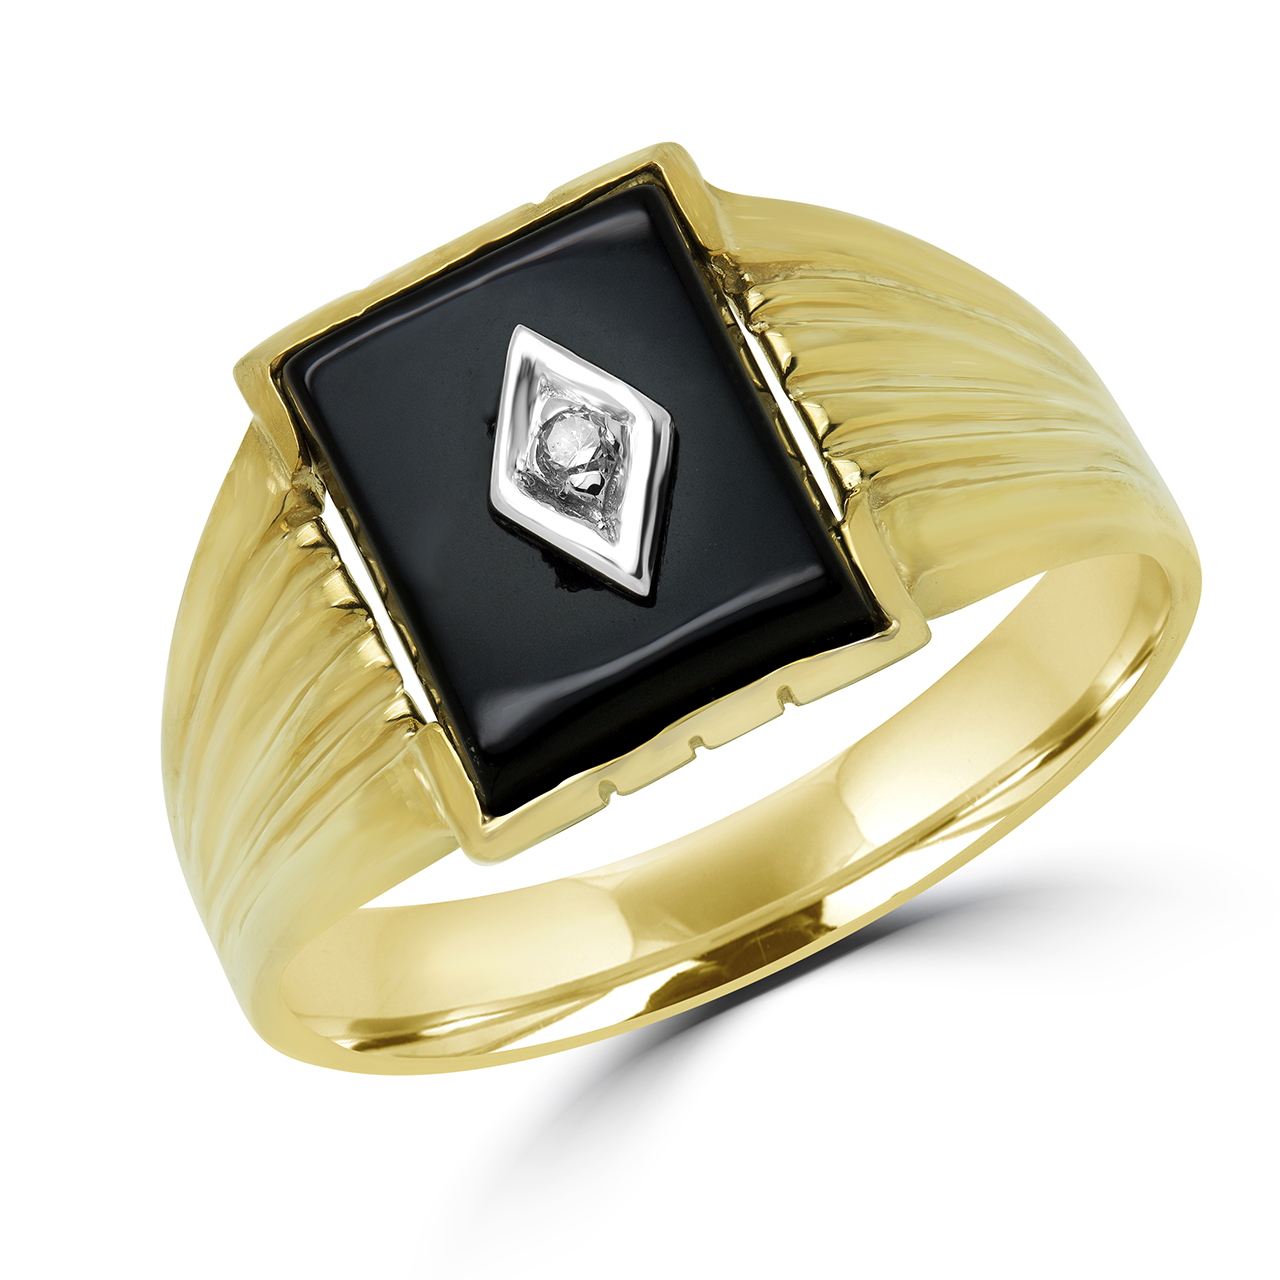 Black onyx diamond 0.02 (ctw)10k yellow gold men's ring